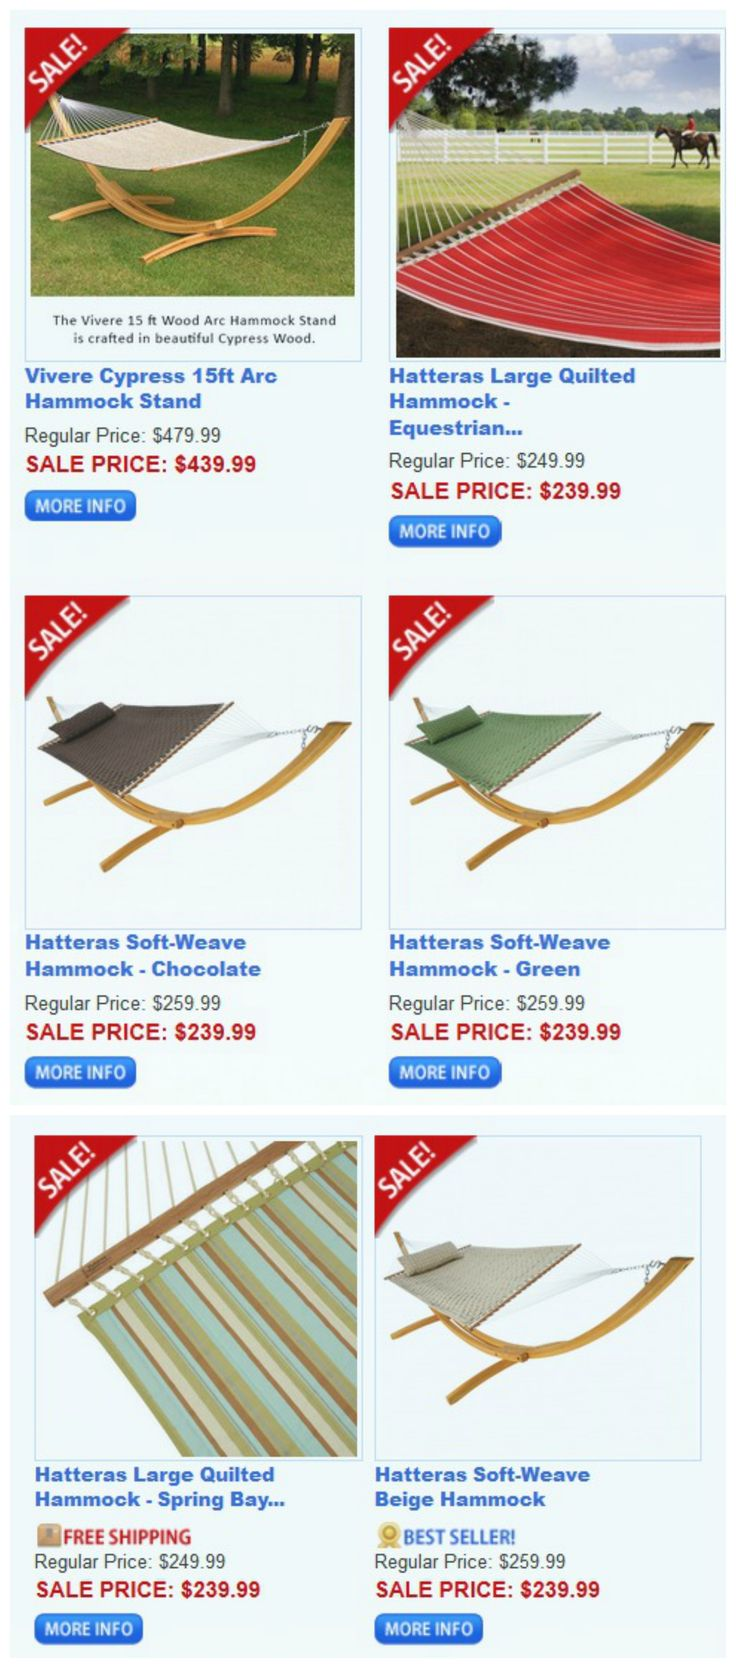 Summer Sale on selected hammocks, stands and accessories! See what's on sale here